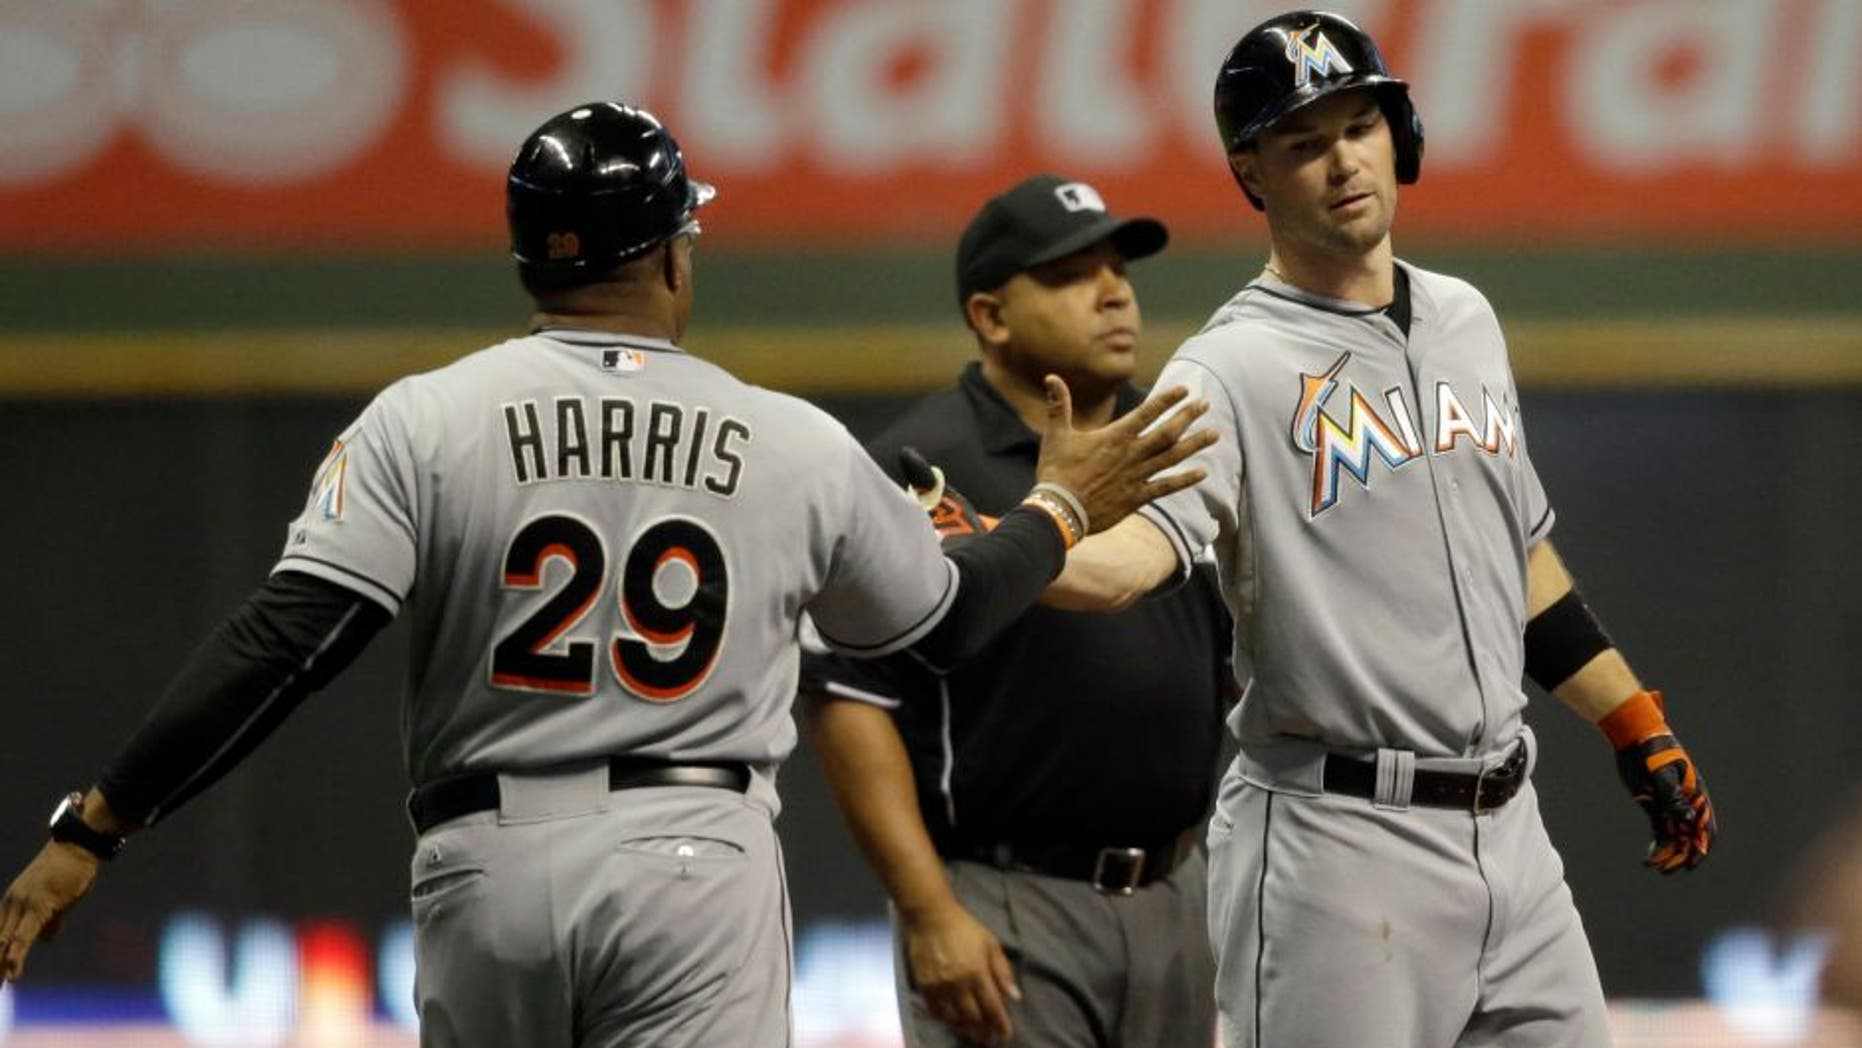 Miami Marlins' Cole Gillespie, right, is congratulated by third base coach Lenny Harris after Gillespie's three- run triple against the Milwaukee Brewers during the first inning of a baseball game, Tuesday, Aug. 18, 2015, in Milwaukee. (AP Photo/Jeffrey Phelps)